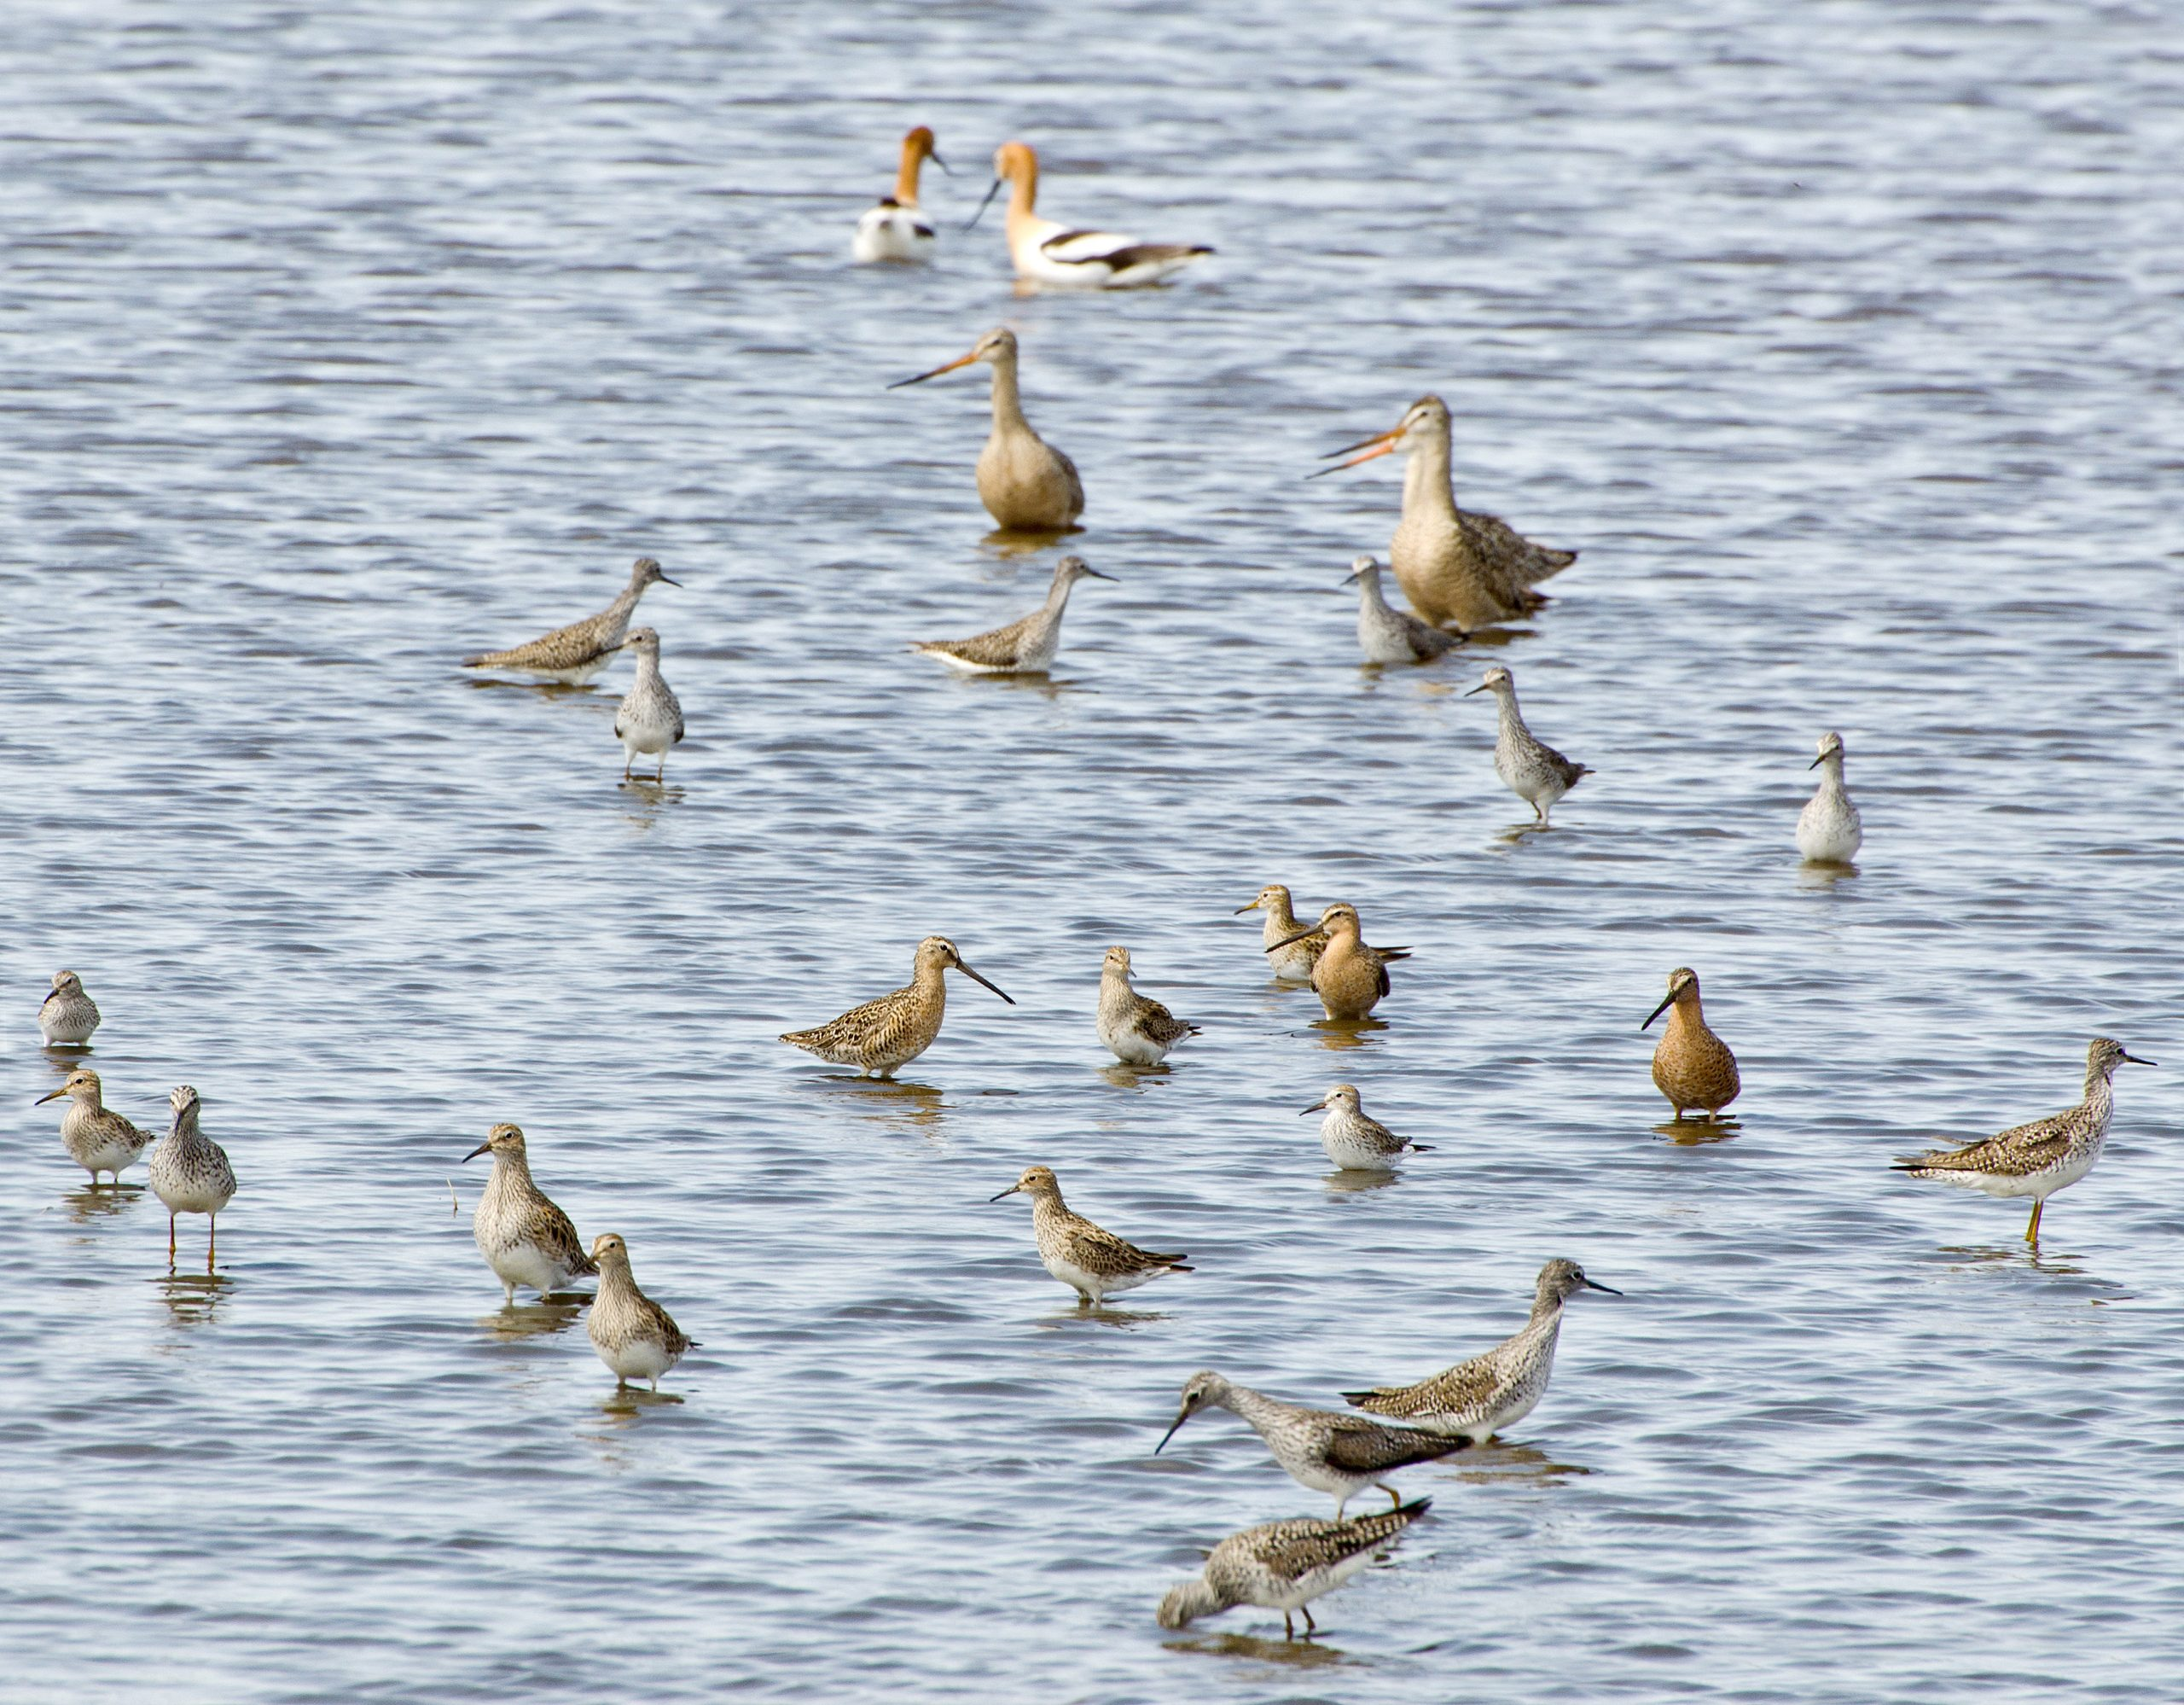 Sandpipers and godwits and dowitchers